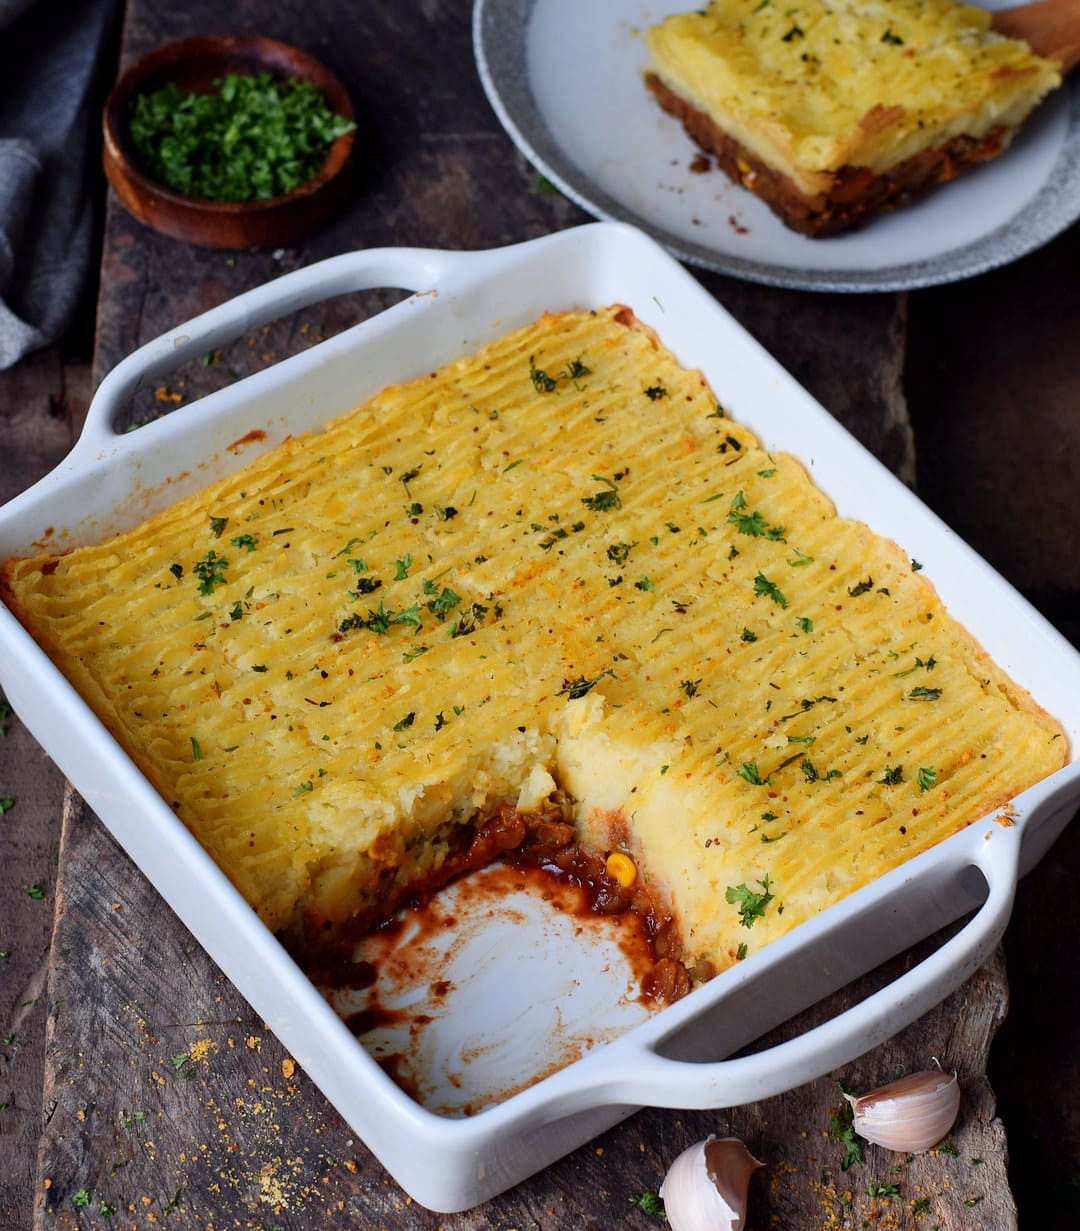 gluten-free vegan shepherds pie in a baking dish